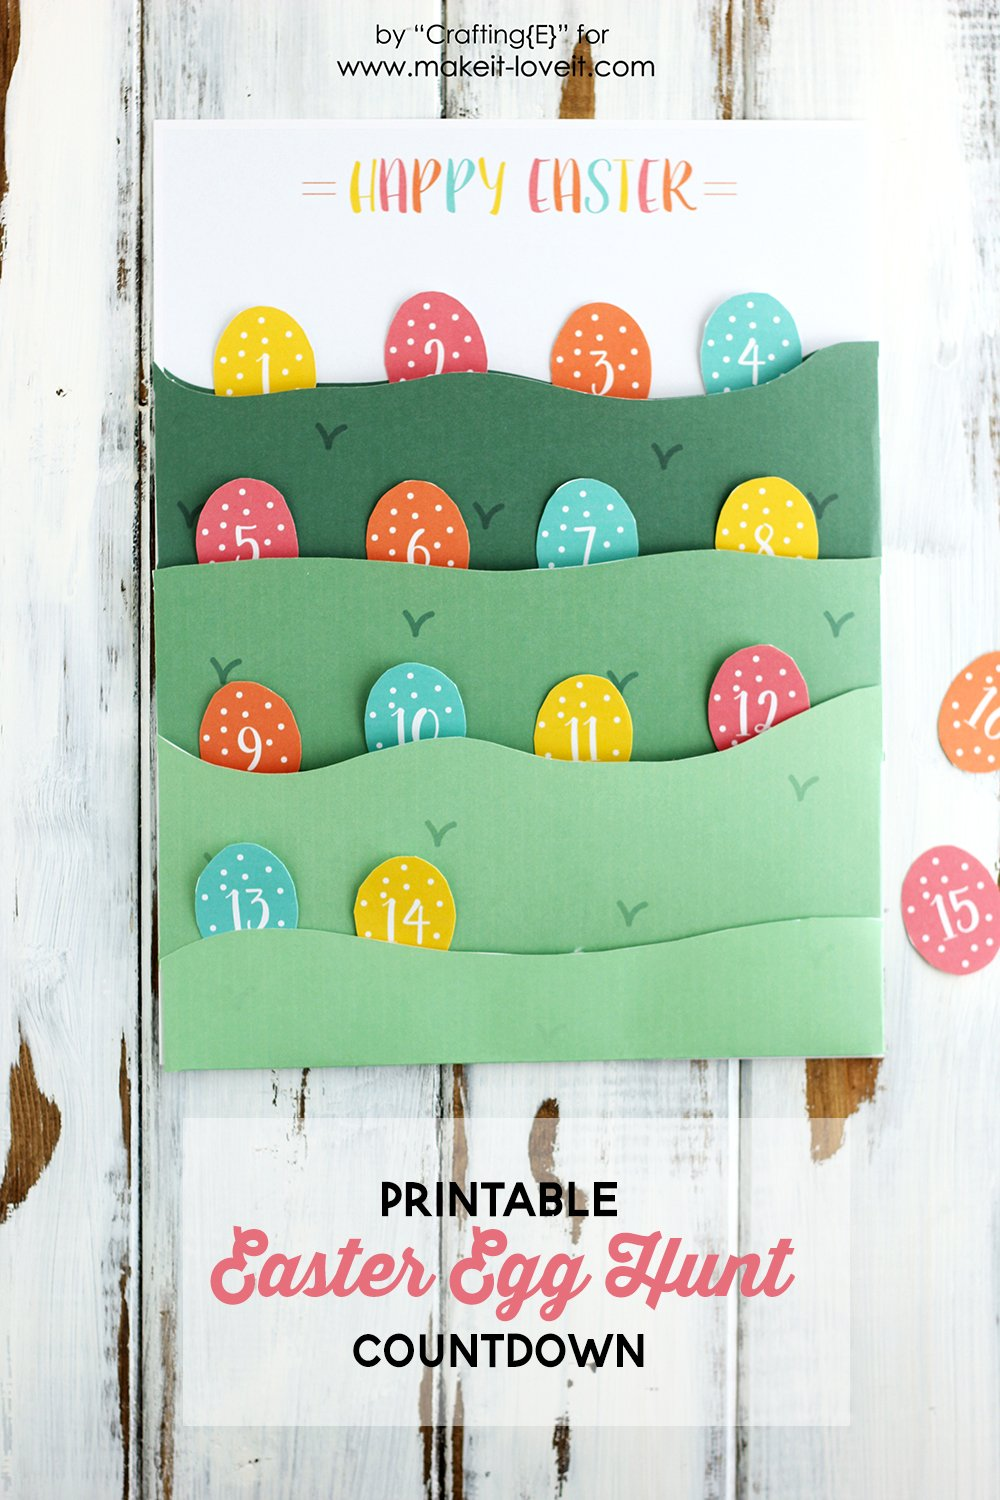 Printable easter egg hunt countdown